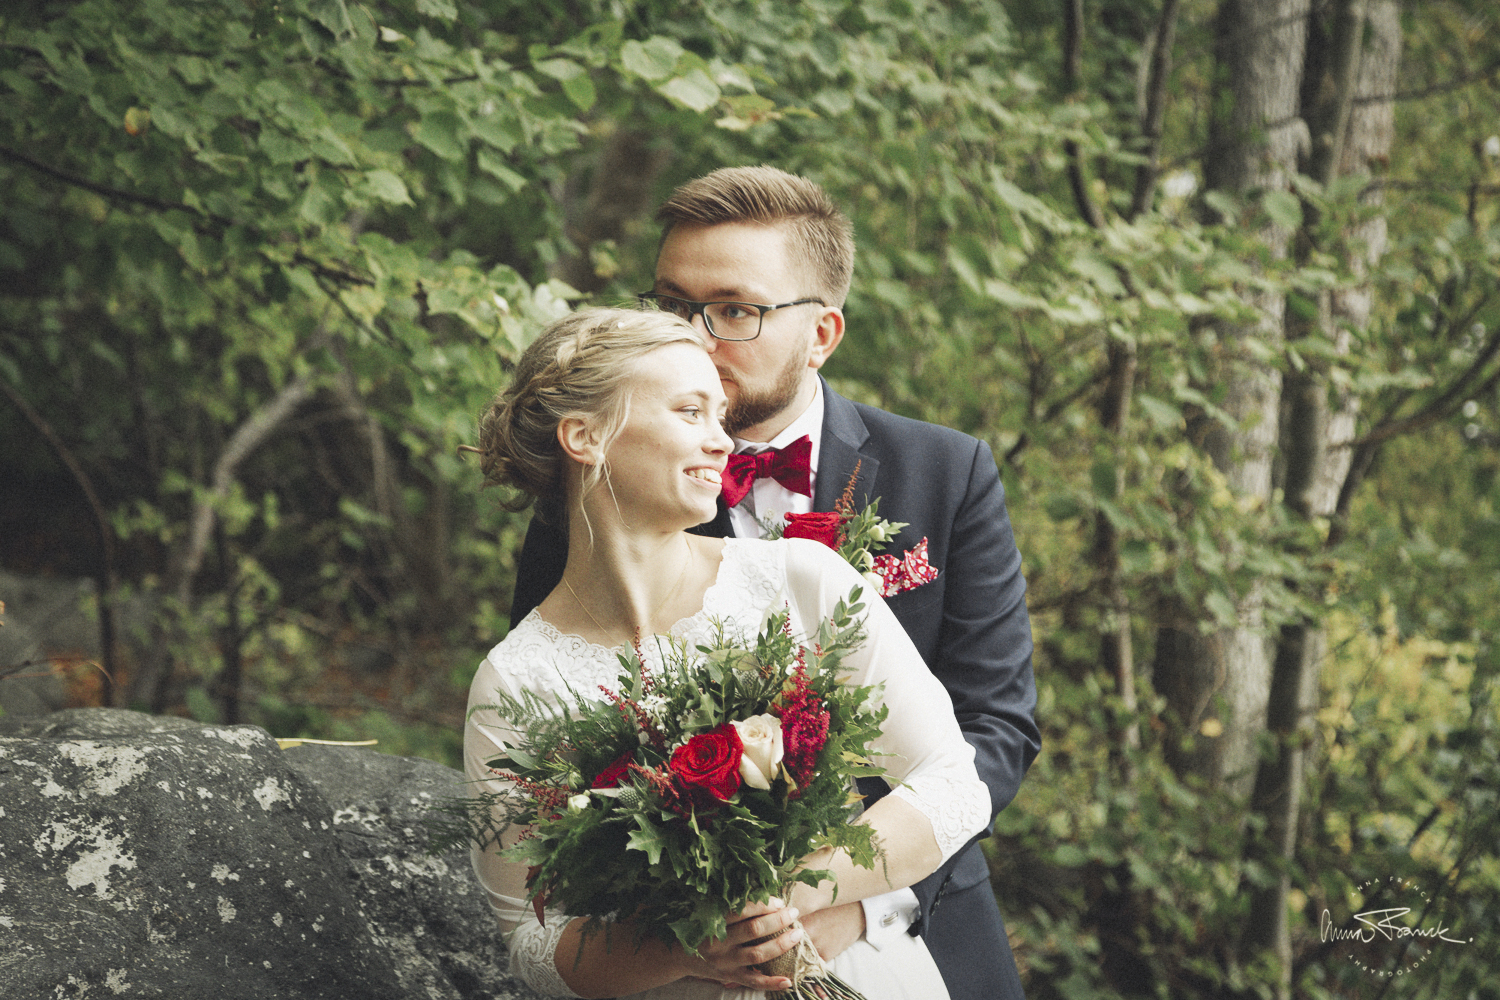 relaxed summer wedding in Stockholm - Anna Franck Photography